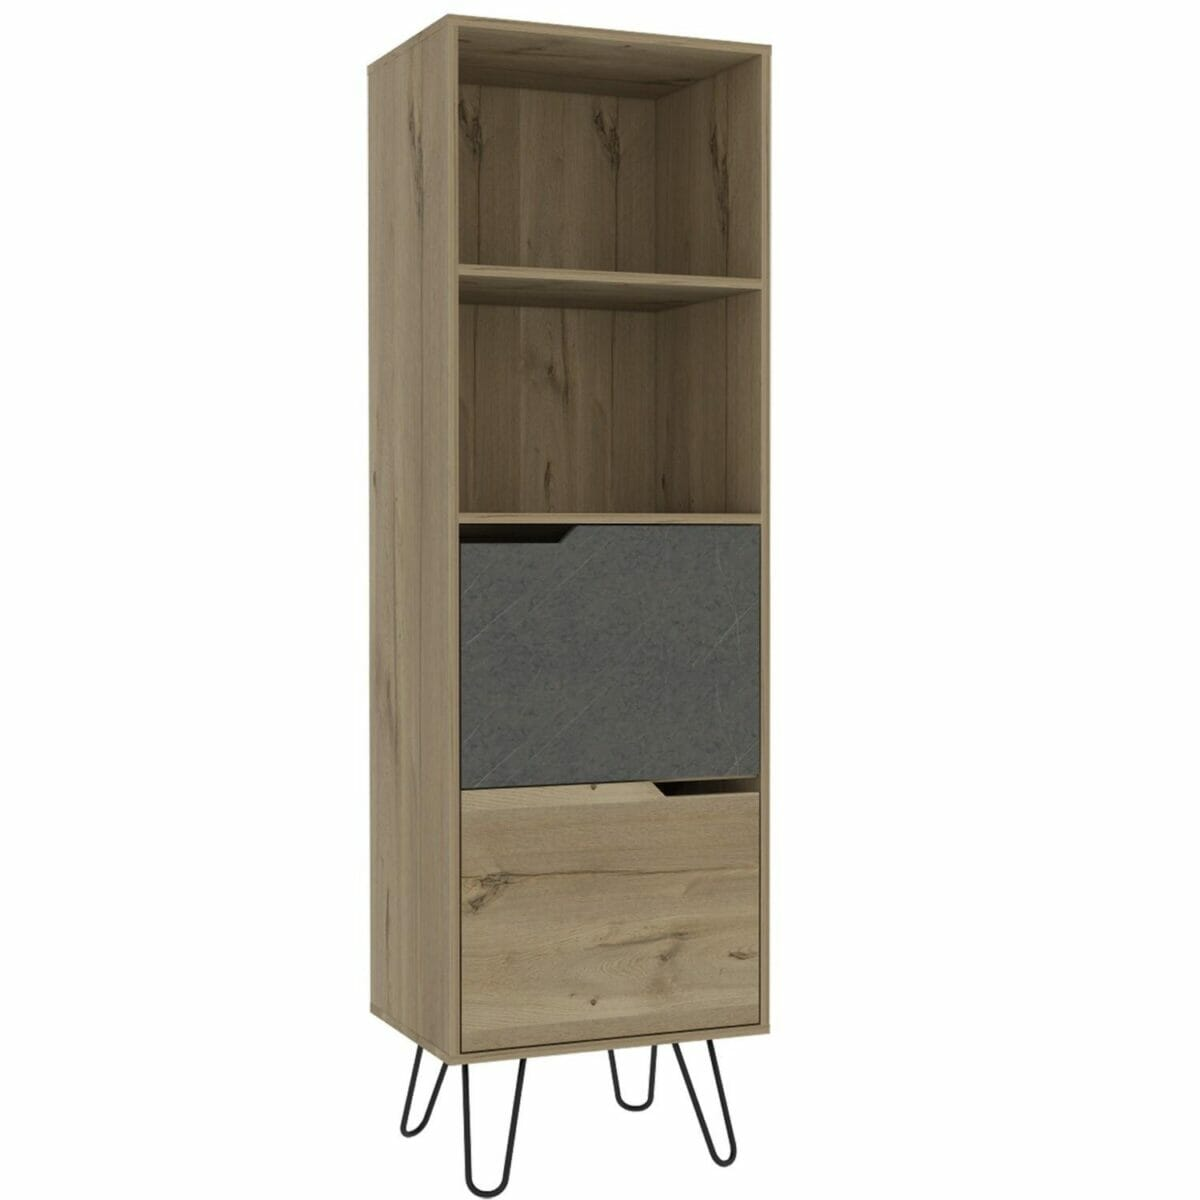 Manhattan Melamine Faced Chipboard Tall Bookcase, With 2 Doors